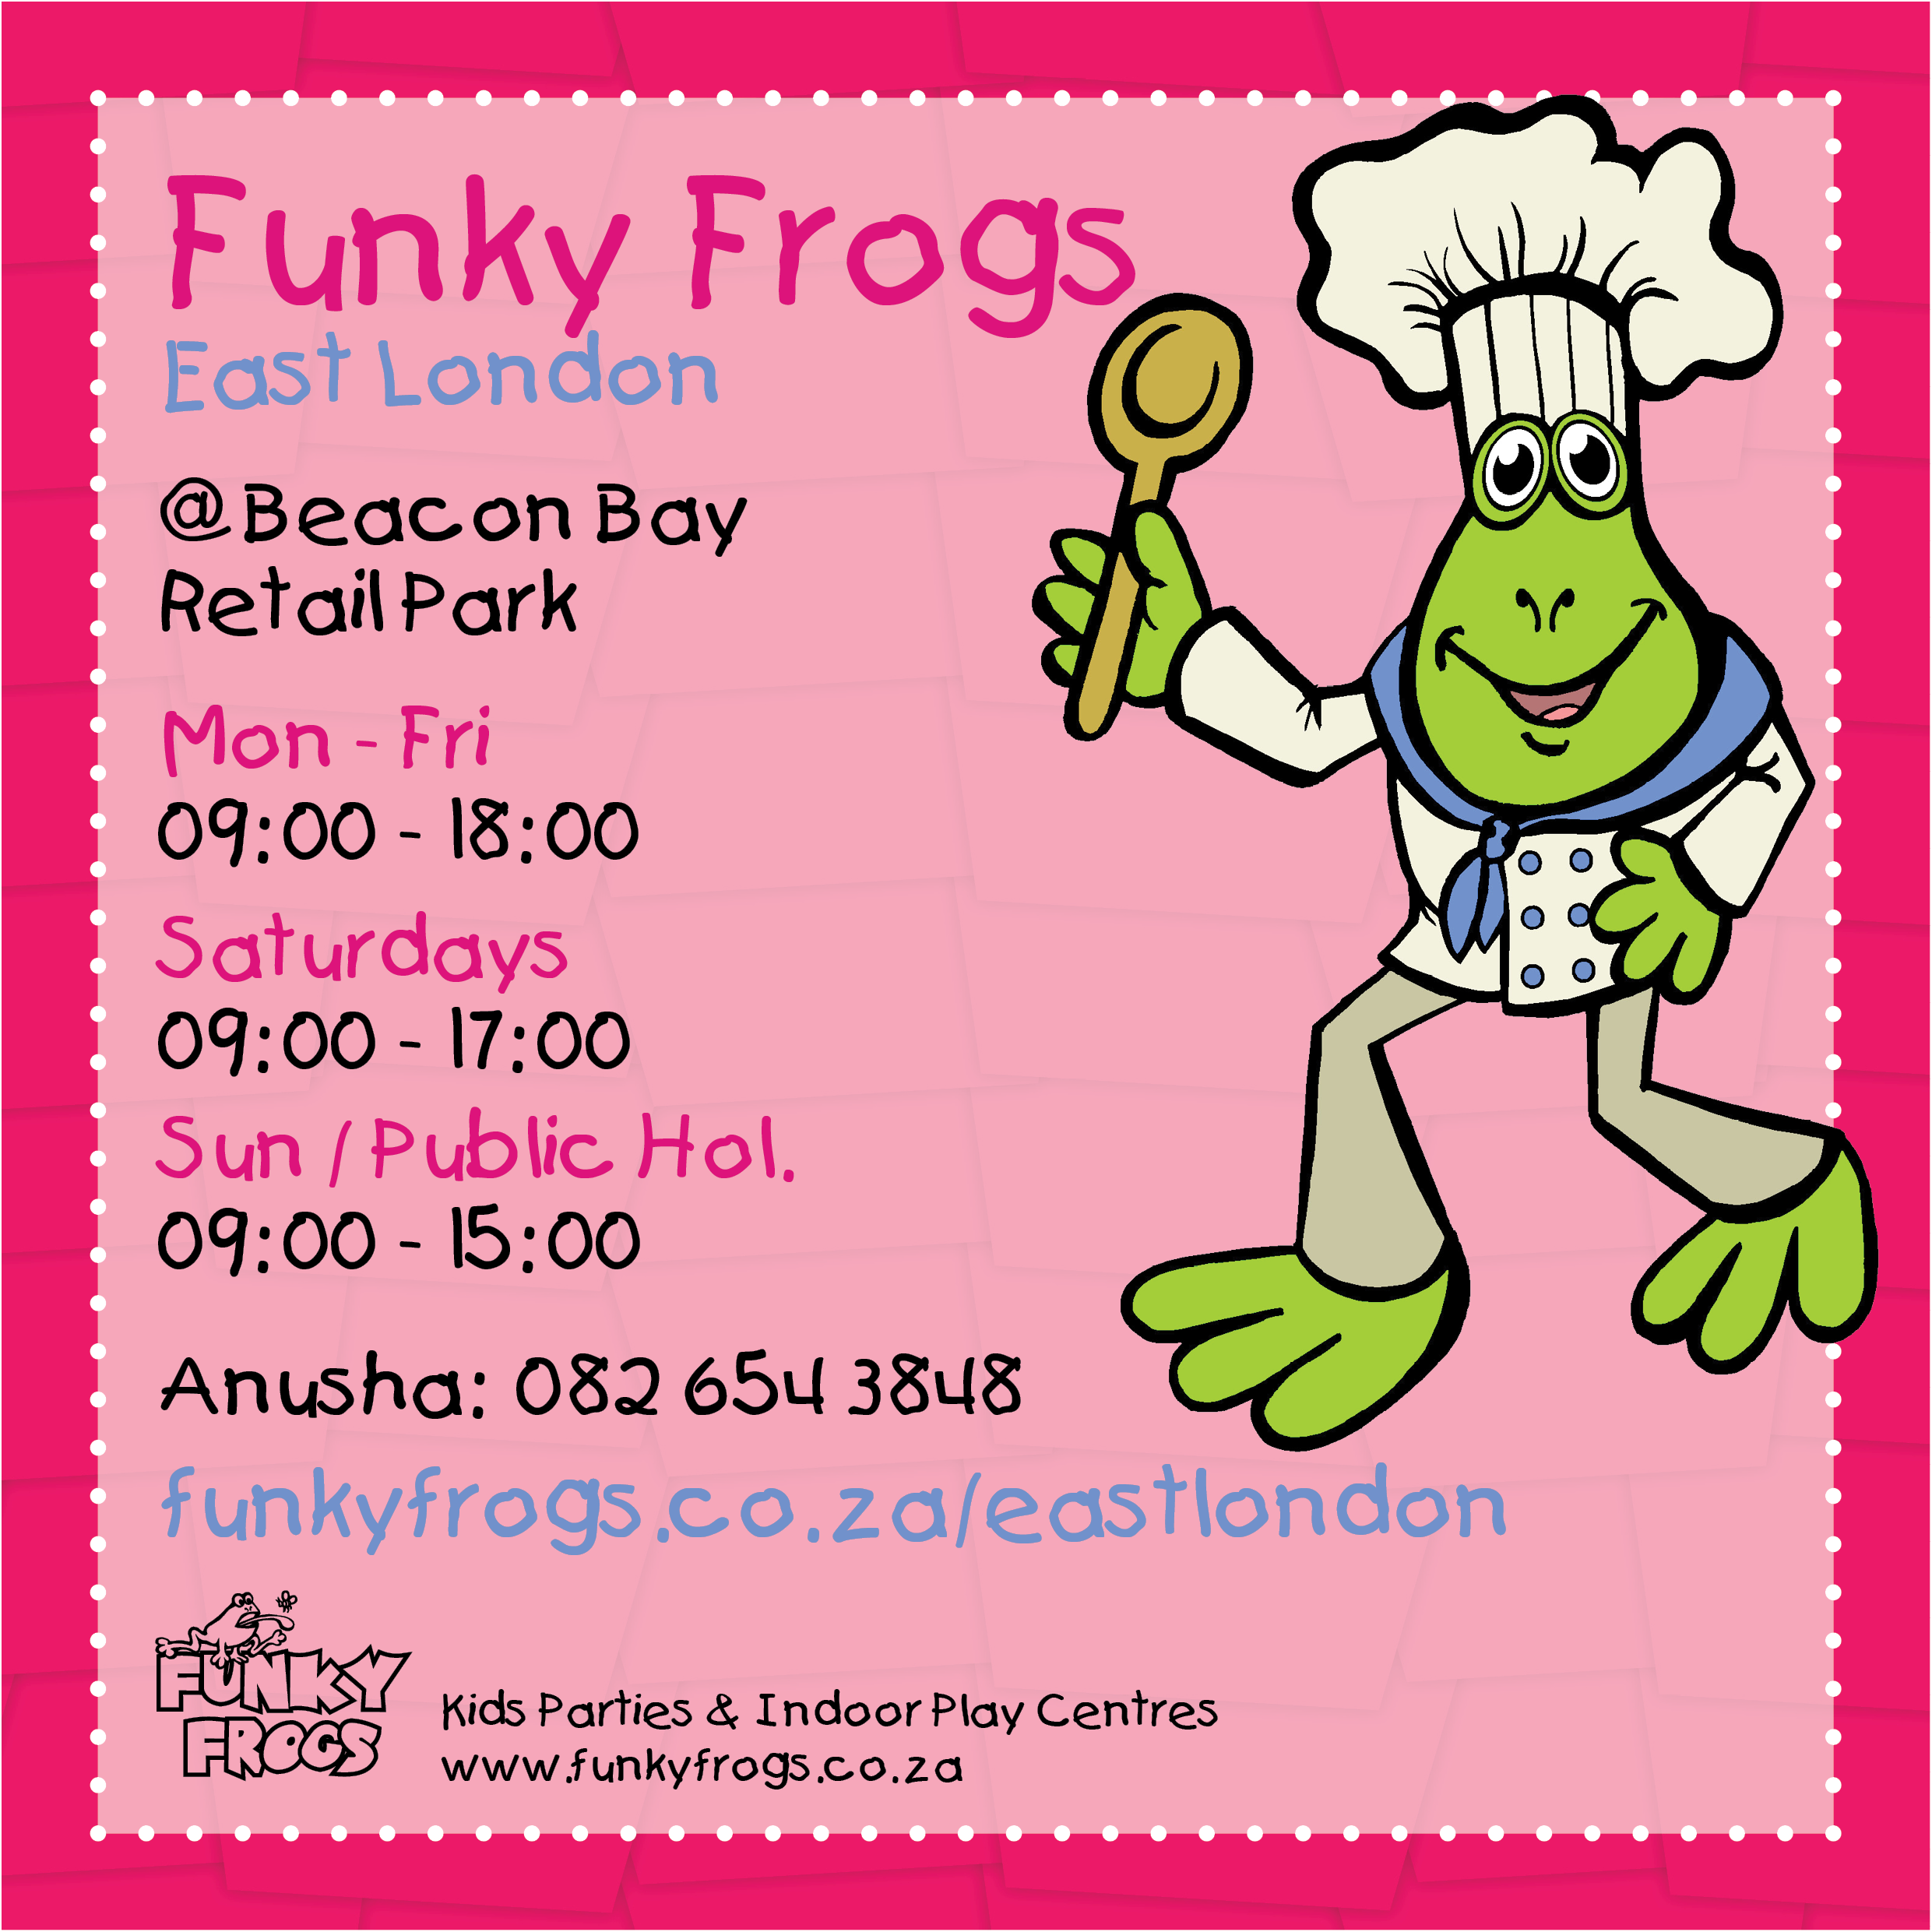 Funky Frogs East London Indoor Play Centre And Kids Parties More - Childrens birthday party ideas east london